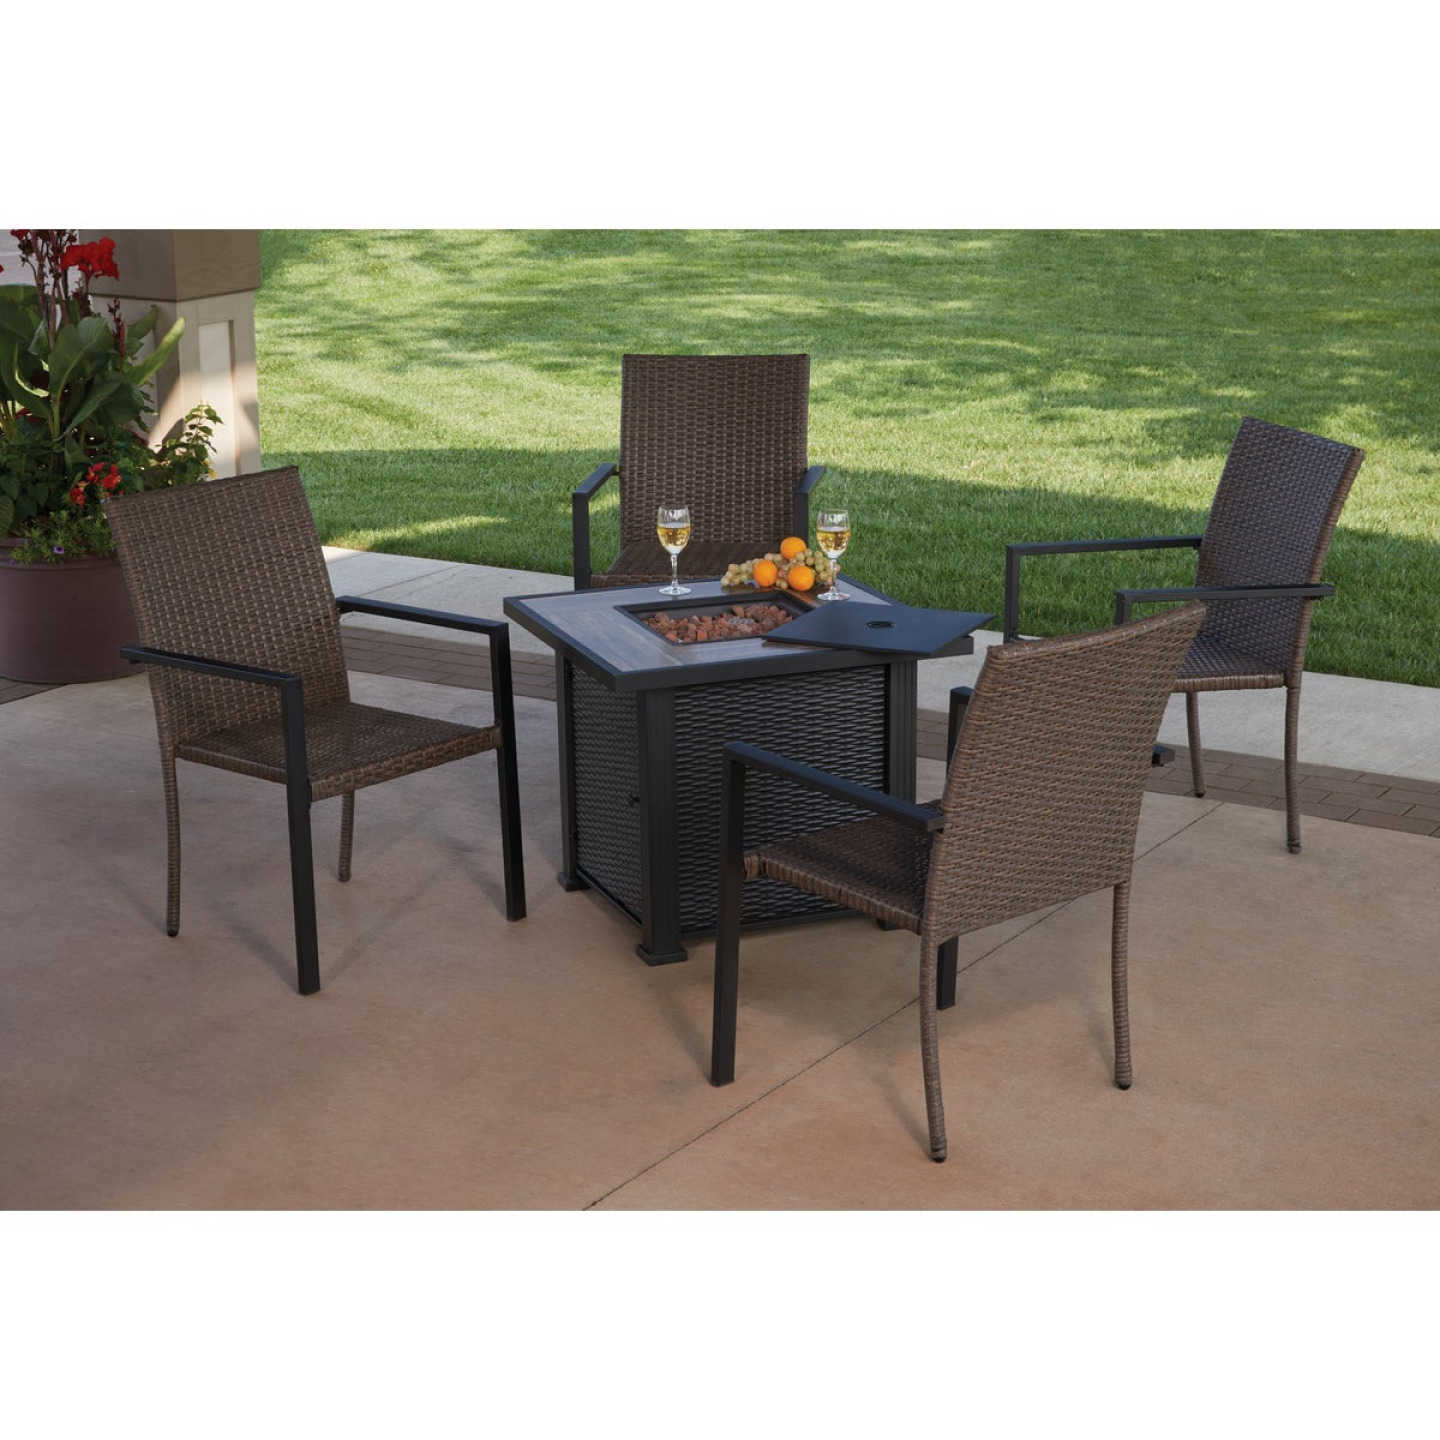 Leisure Classics Madrid 5-Piece Fire Table Chat Set Image 4